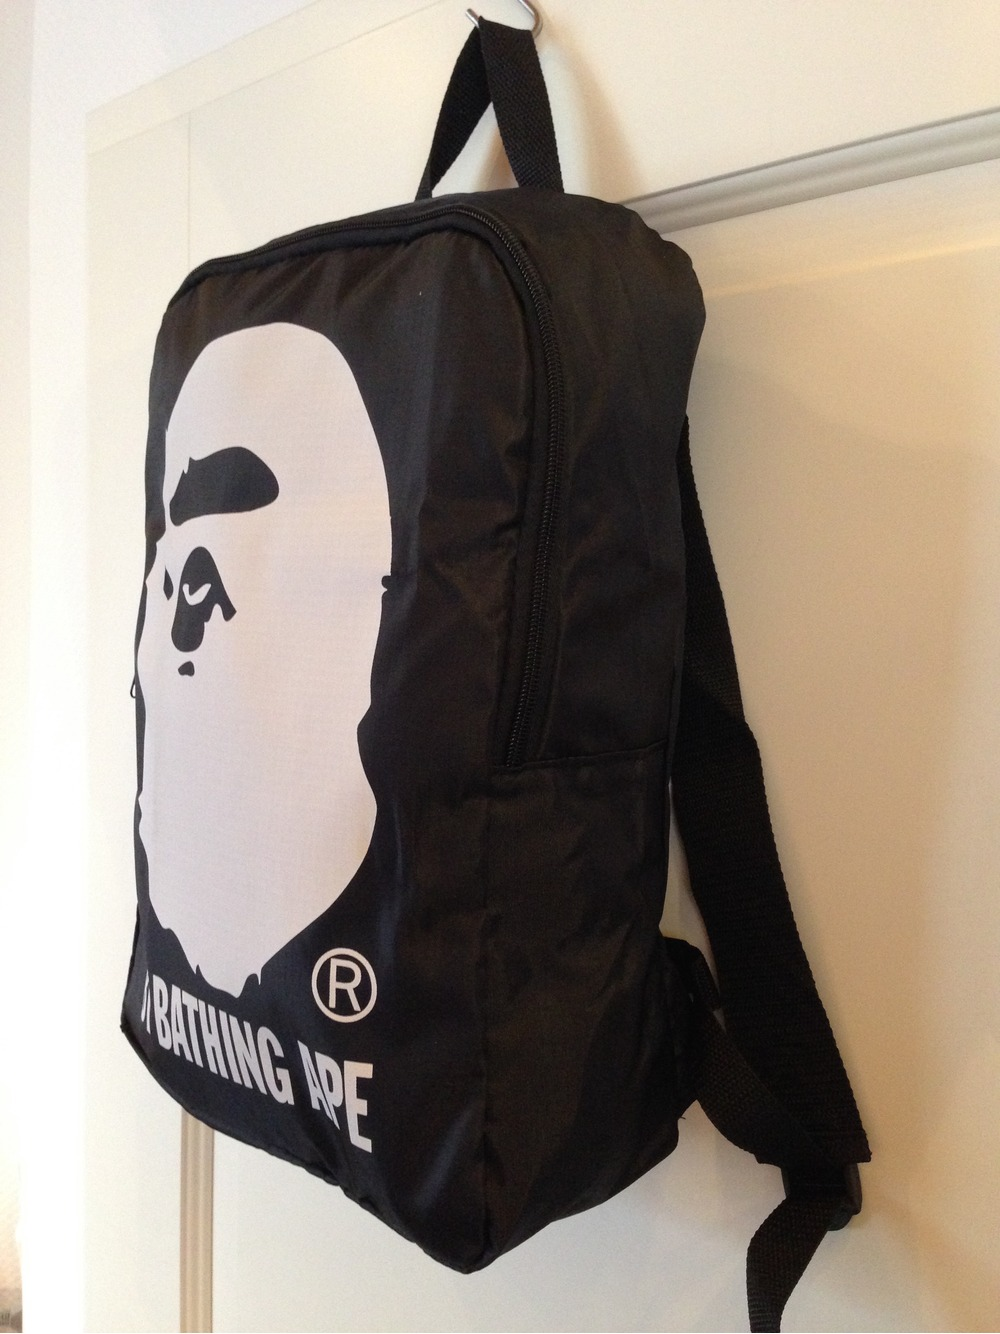 A Bathing Ape Bape Backpack DS condition new and unused 313694 from fckyrsht at KLEKT